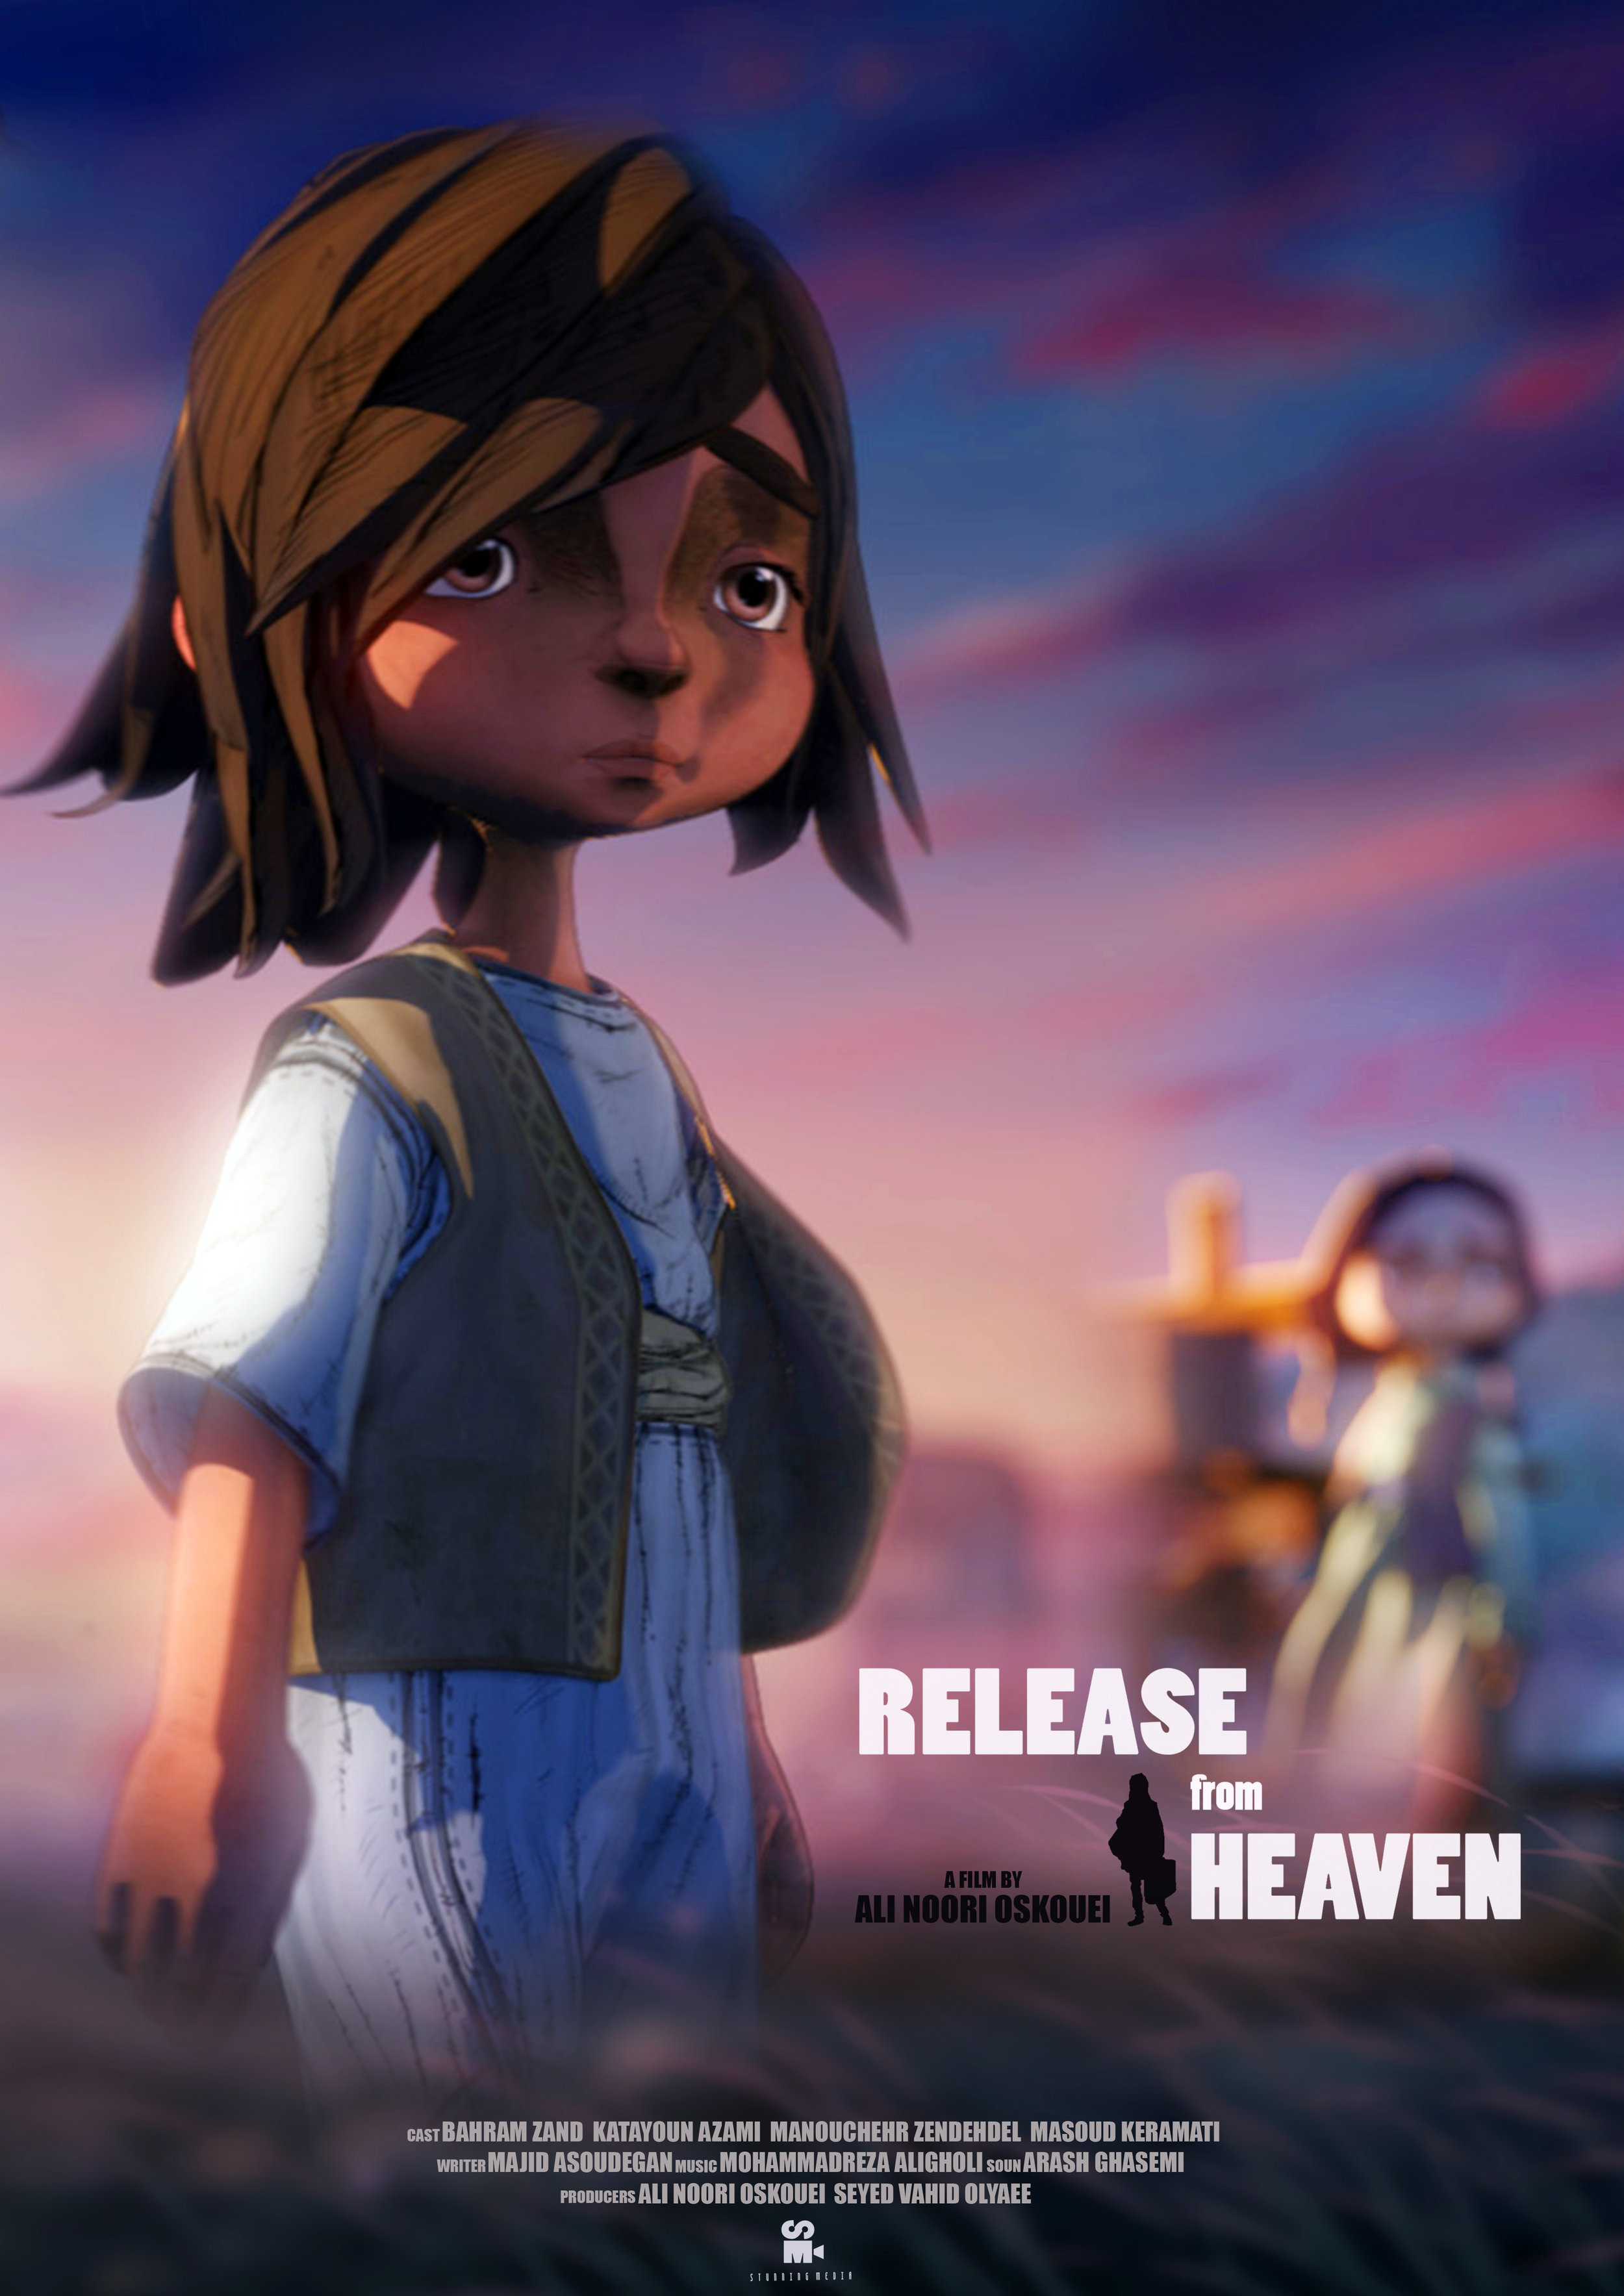 Release from Heaven    In a war-torn country, a female teacher lives with her students in a boarding school. To calm horrified children, she tells them a story...  Read More